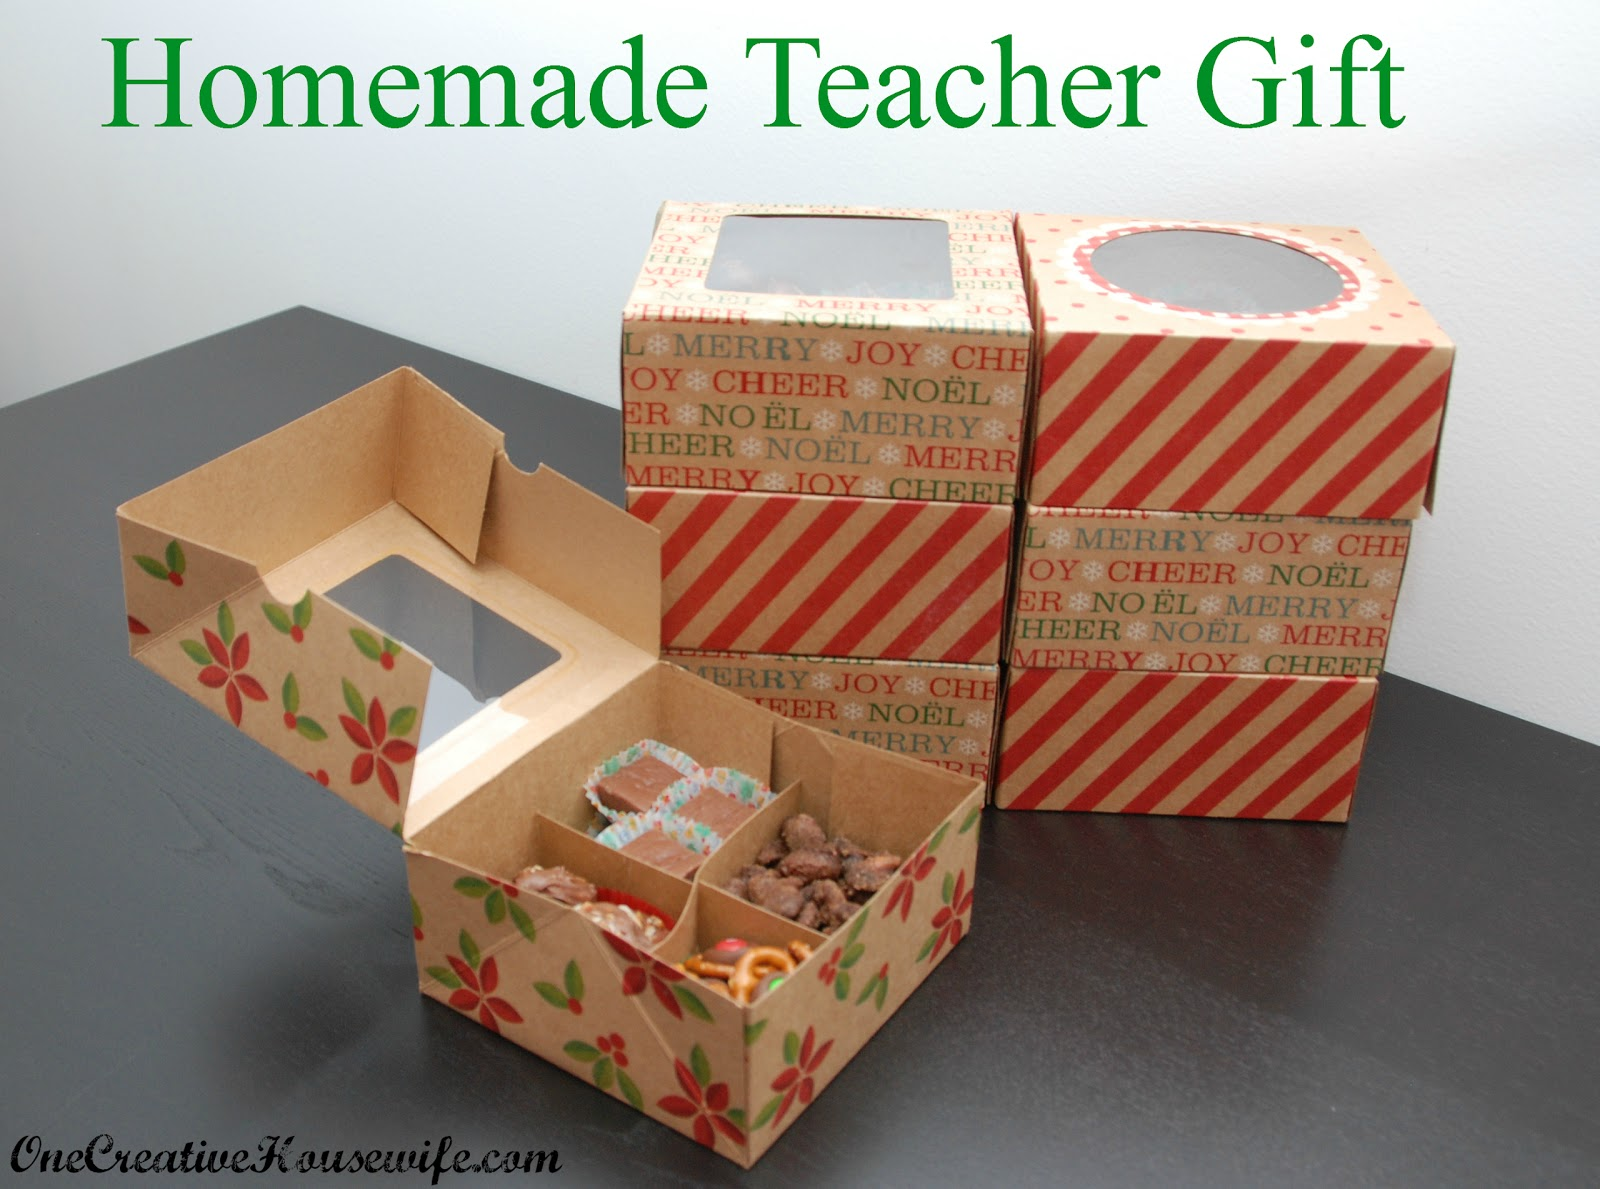 One Creative Housewife: Homemade Christmas Gift for Teachers